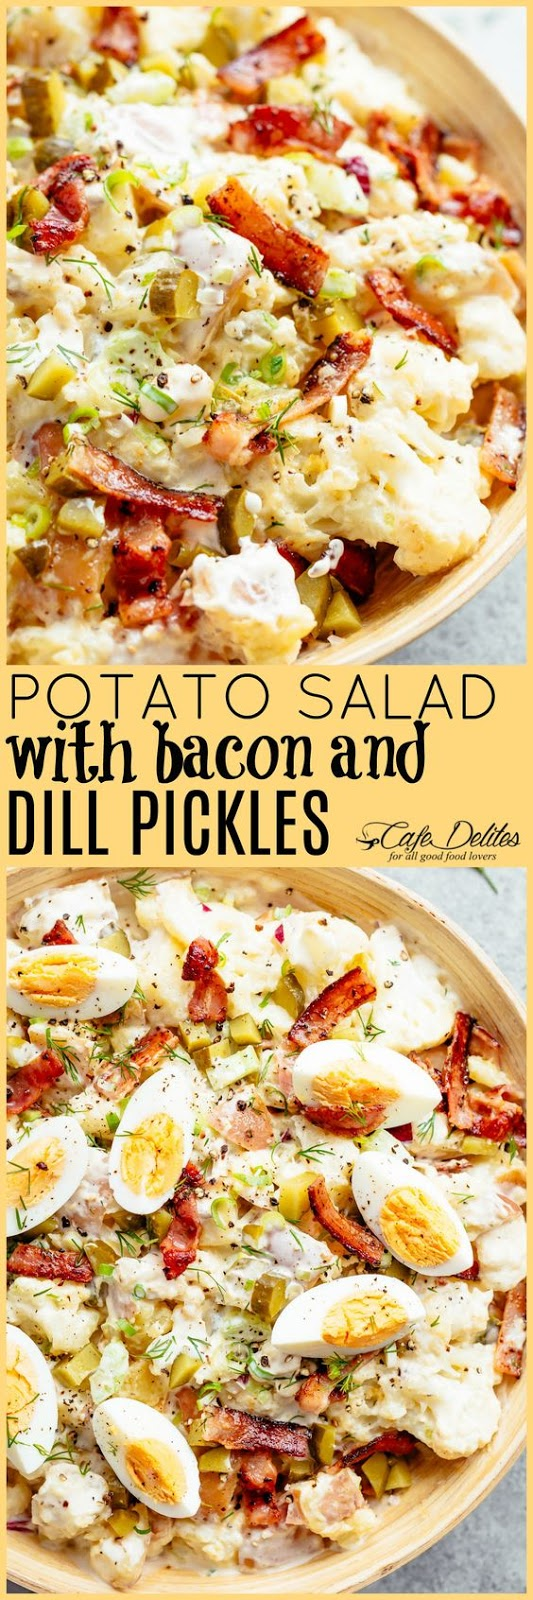 Potato Salad with Bacon, Eggs and Dill Pickles